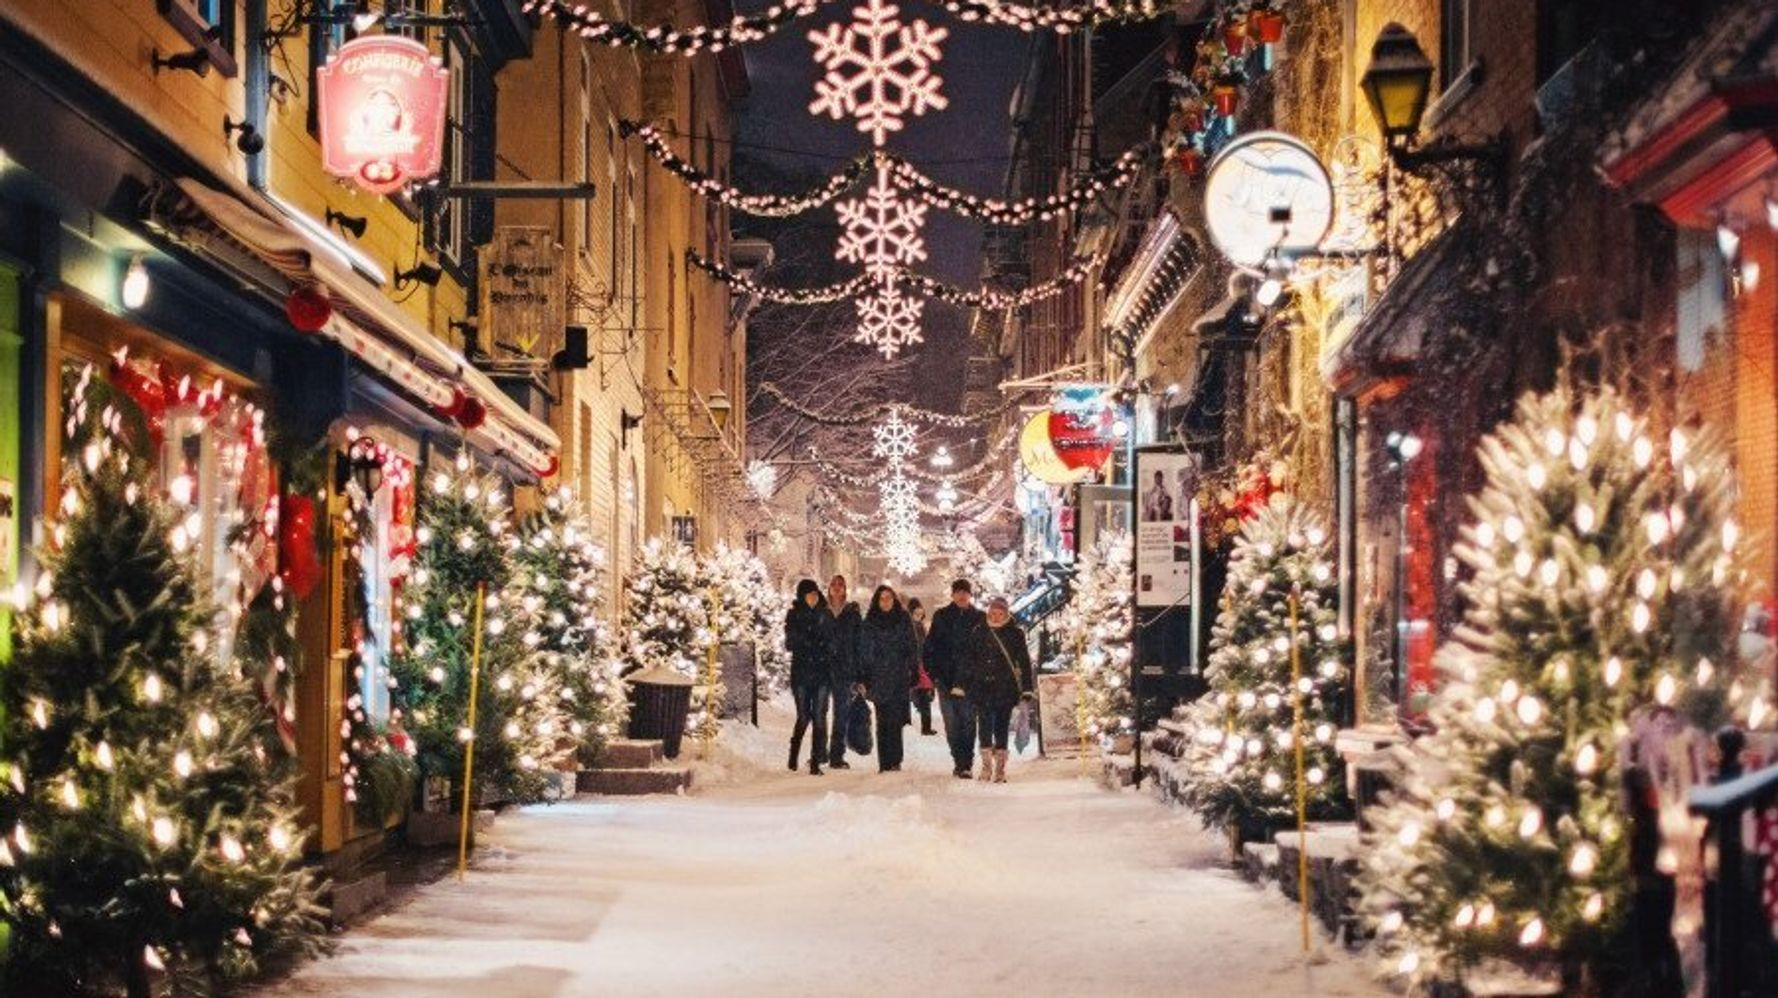 Christmas In Quebec City 2020 5 Ways Quebec City Can Give You A Fairytale Holiday | HuffPost